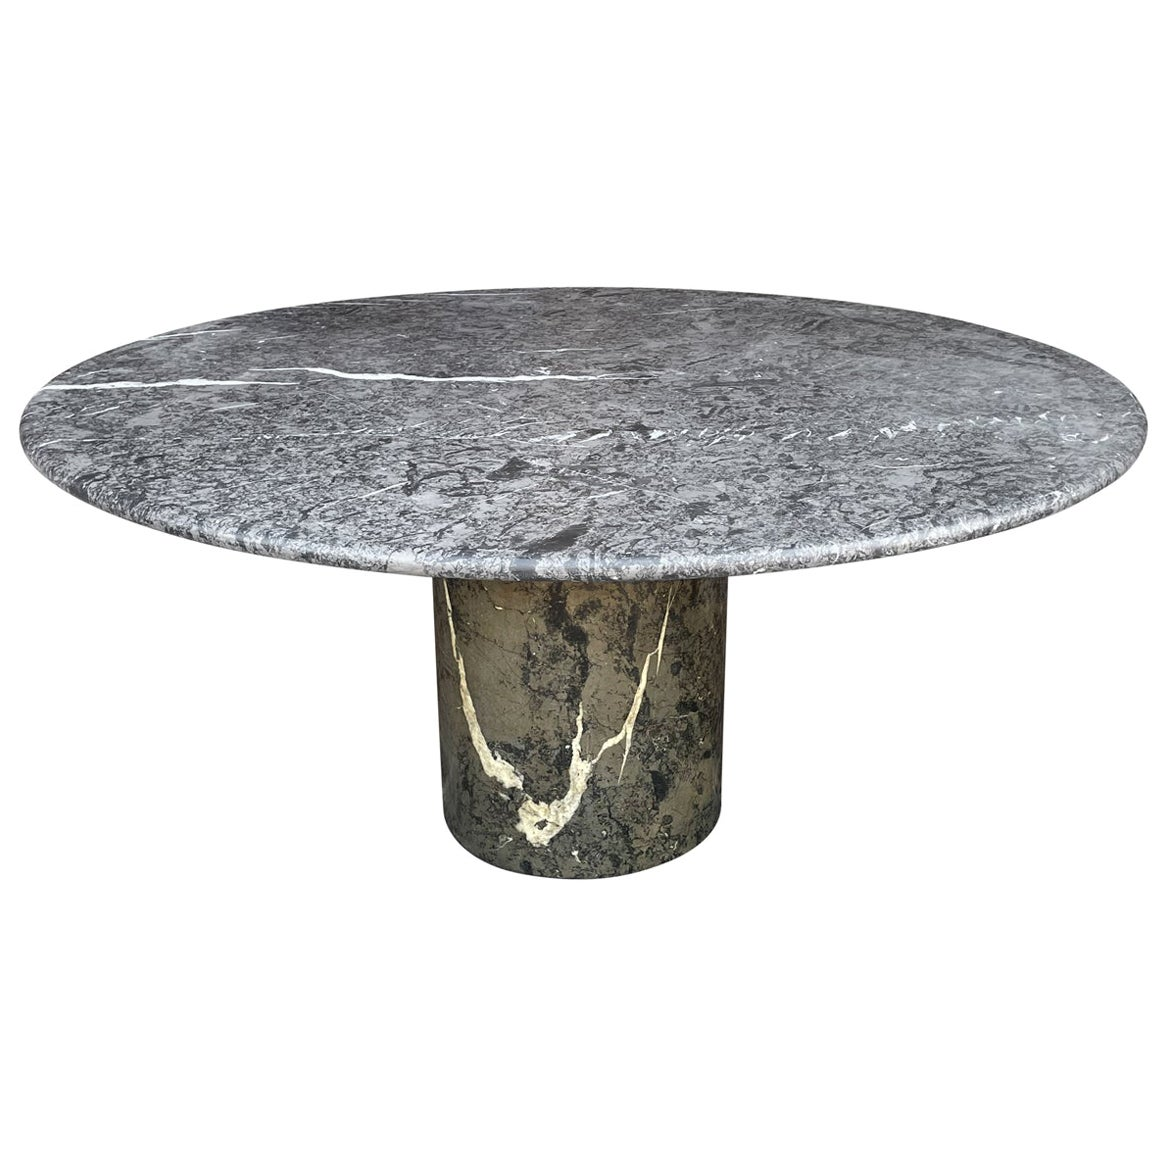 Large Mid Century Italian Modern Circular Marble Dining Table in Green & Gray